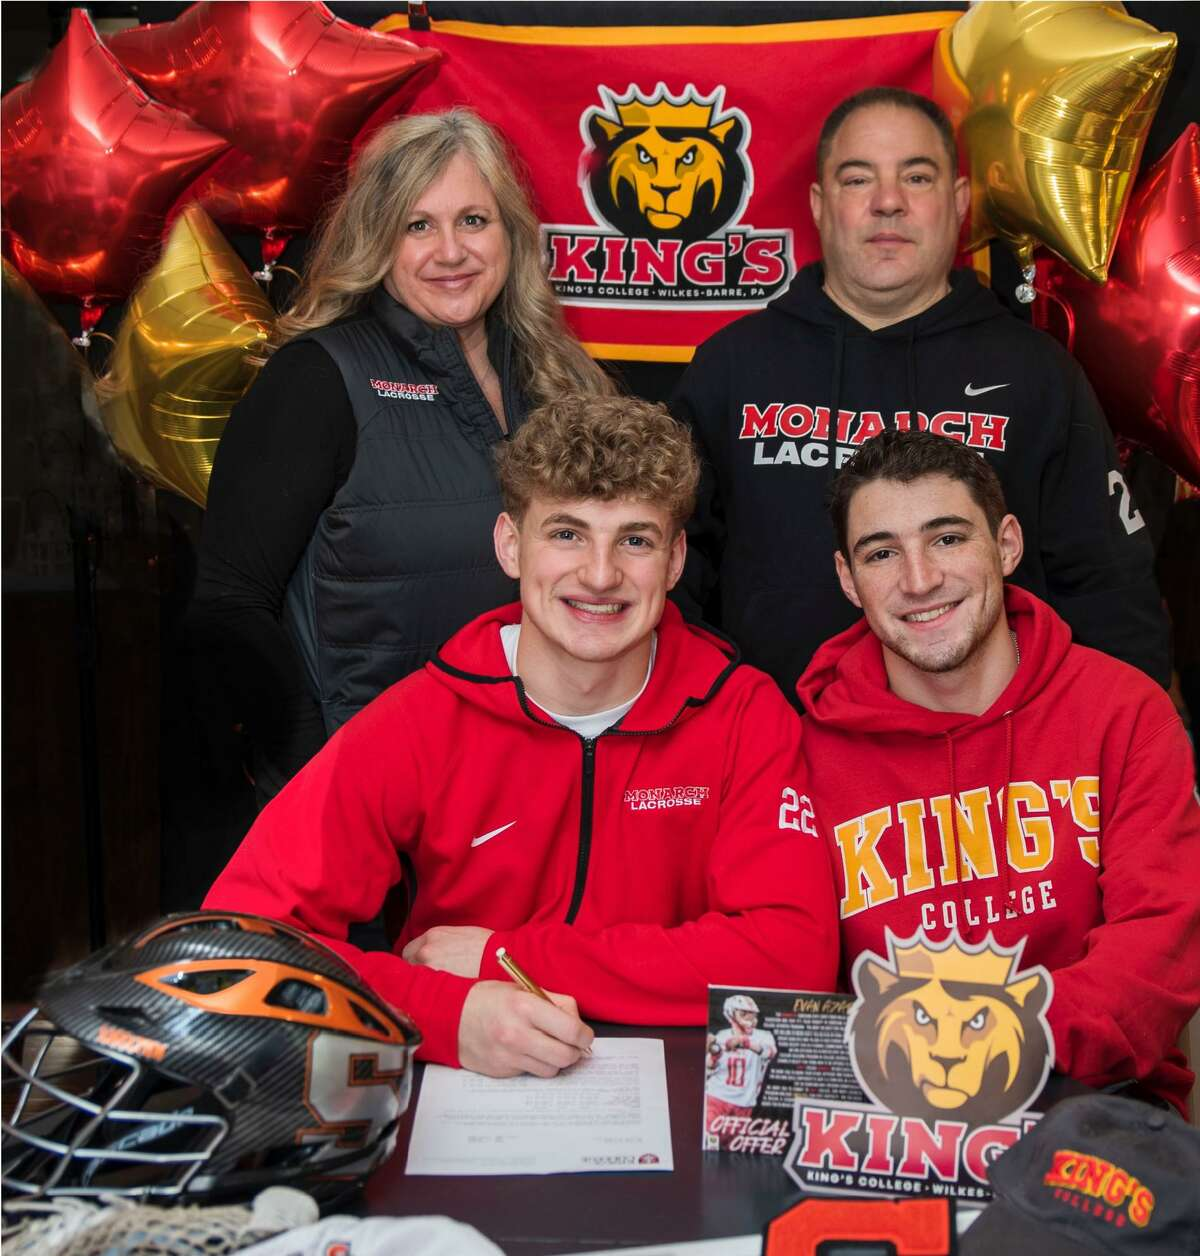 Evan Azary, surrounded my mom Jennifer, dad Joe and brother Alex, celebrates his choice to play soccer at King's College.